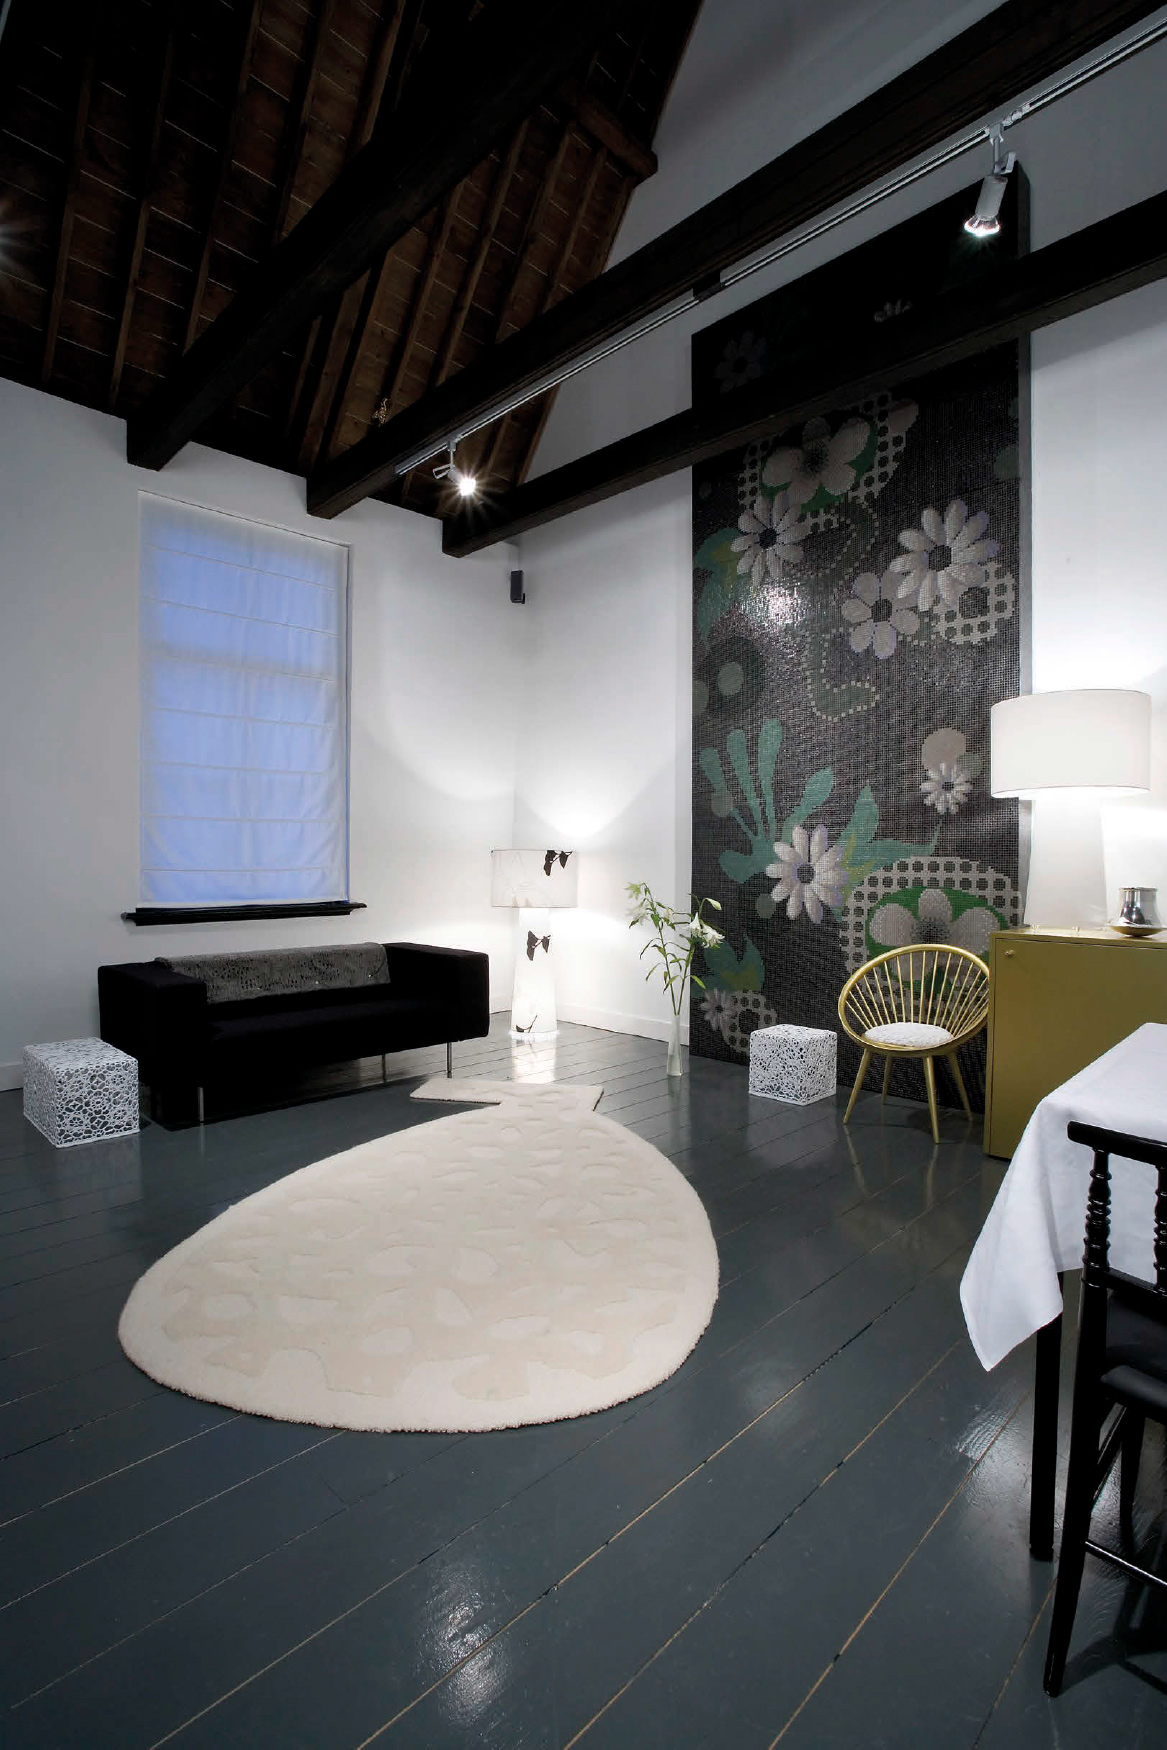 One of the Lute Suites, featuring Bisazza Moonlight Garden